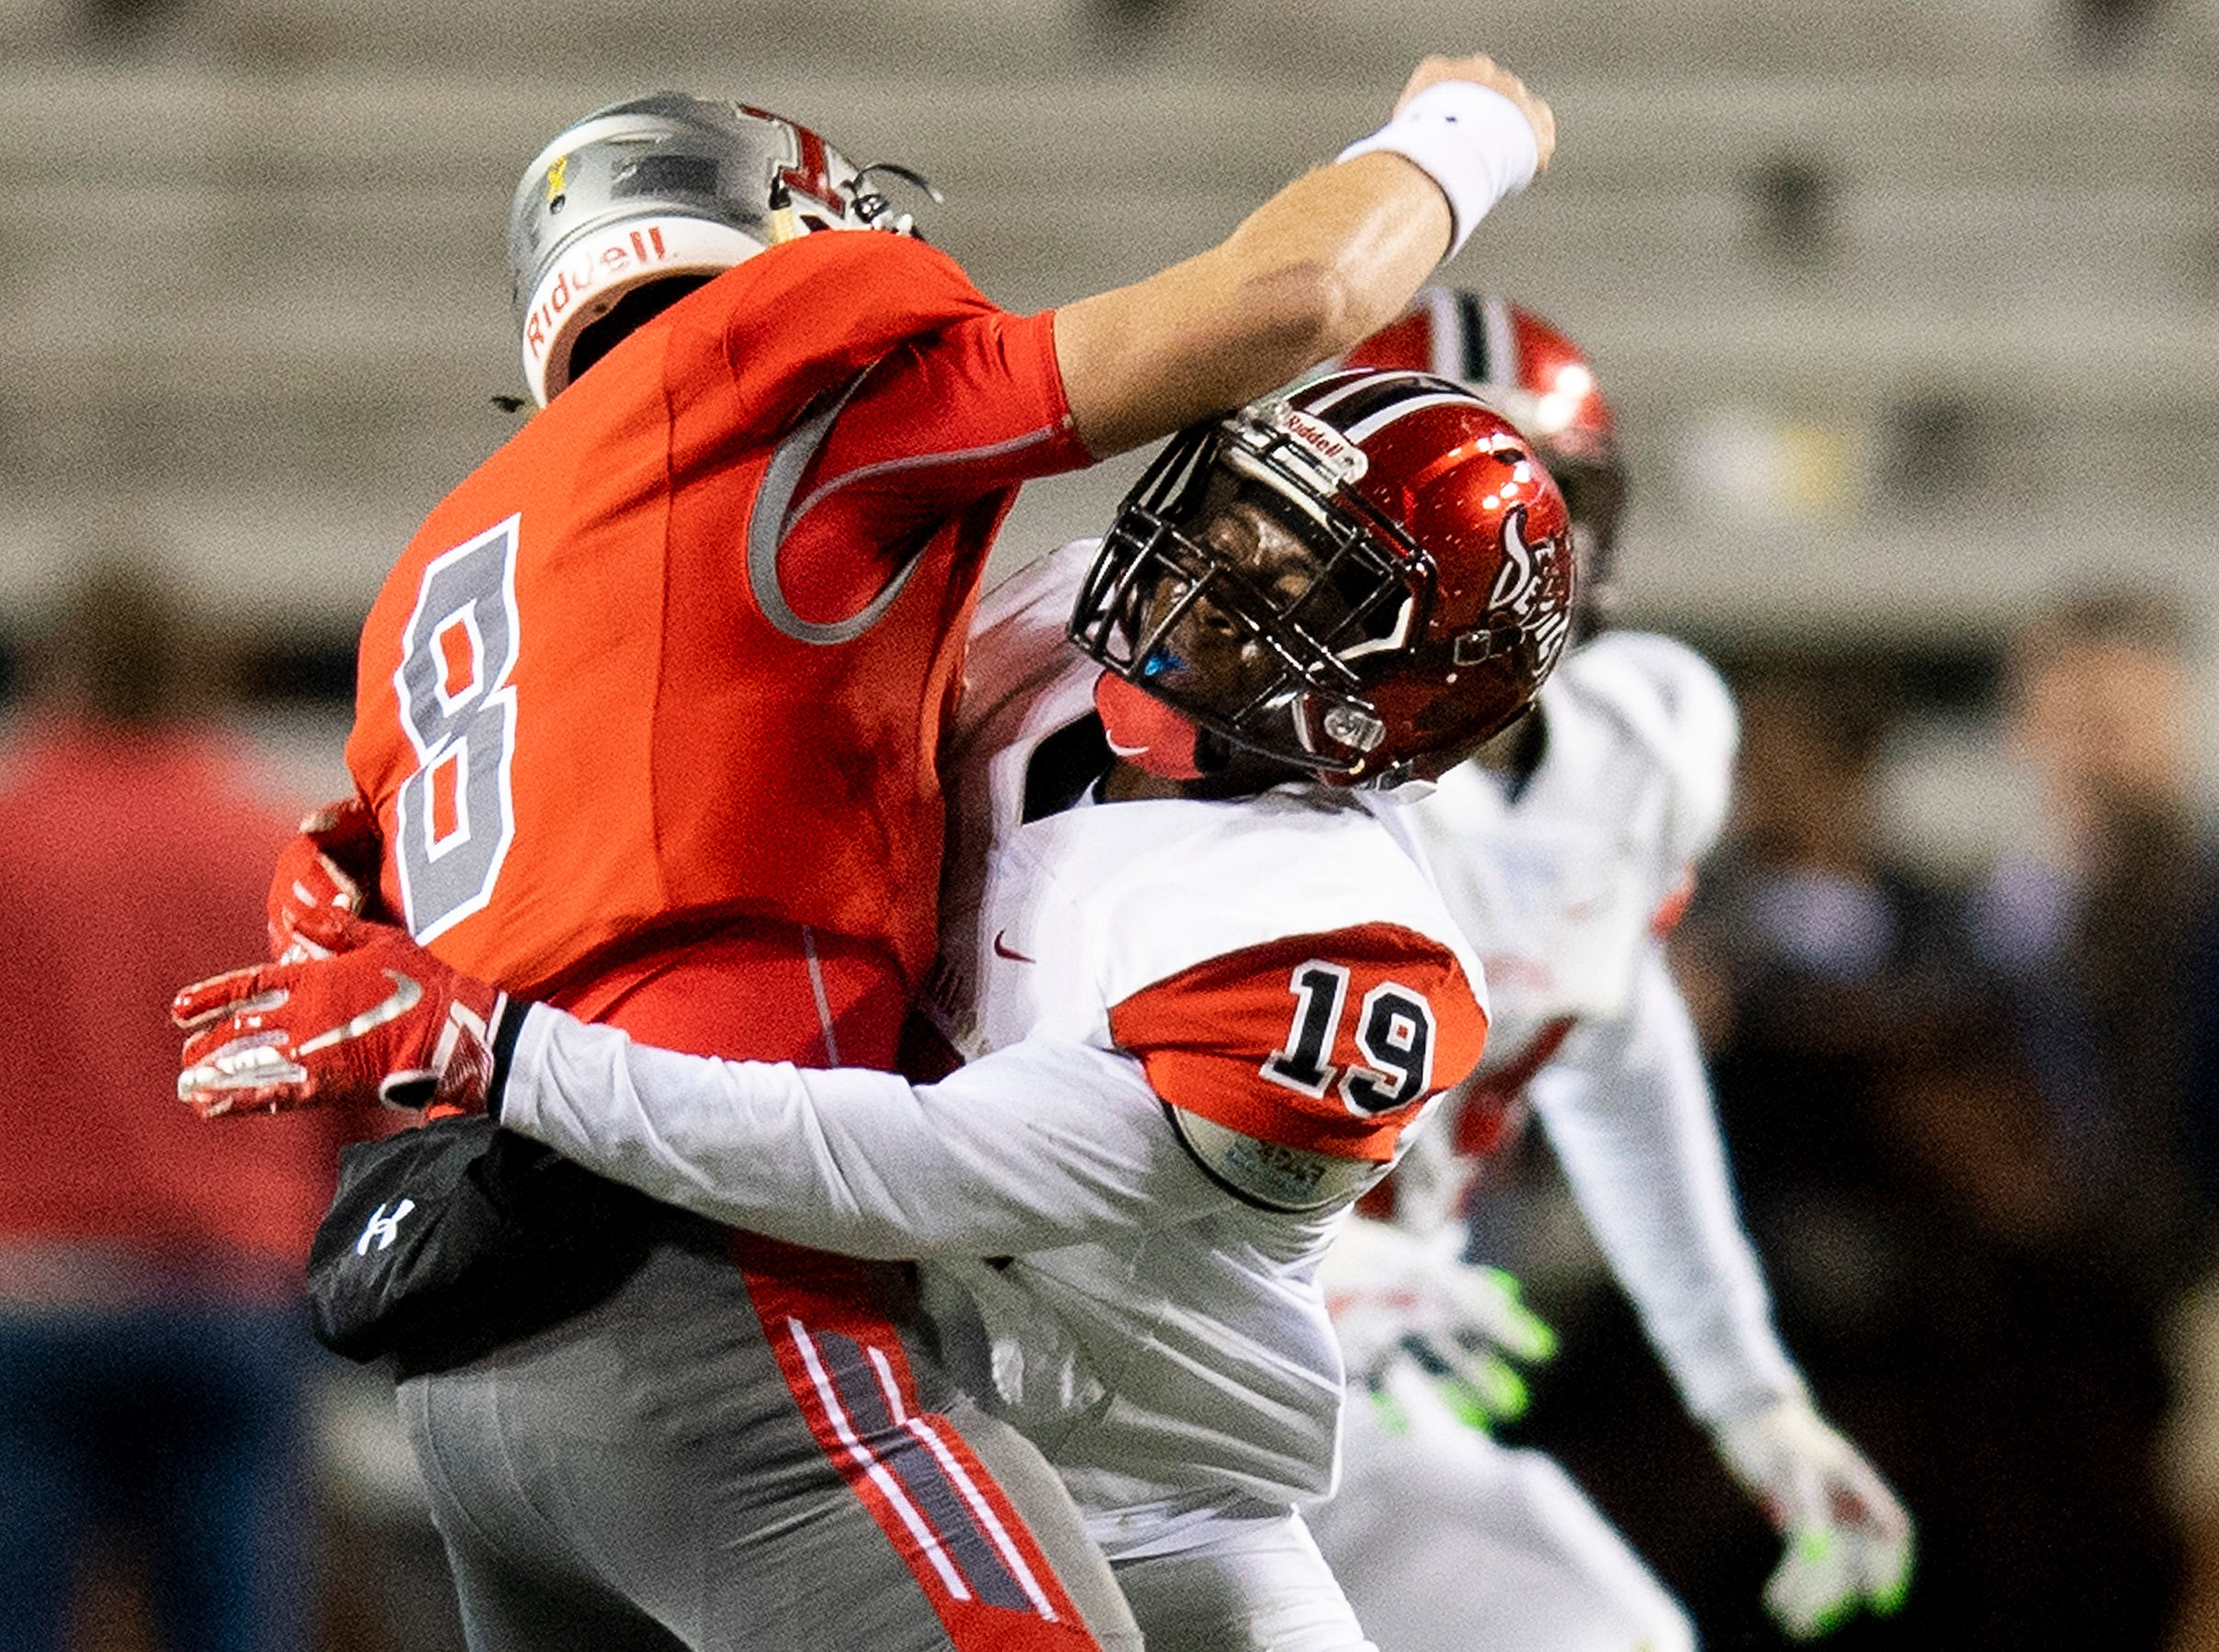 Central-Phenix City's Terrell Covington hits Thompson's Sawyer Pate as he releases his pass during the AHSAA Class 7A State Championship Football Game at Jordan Hare Stadium in Auburn, Ala., on Wednesday evening December 5, 2018.